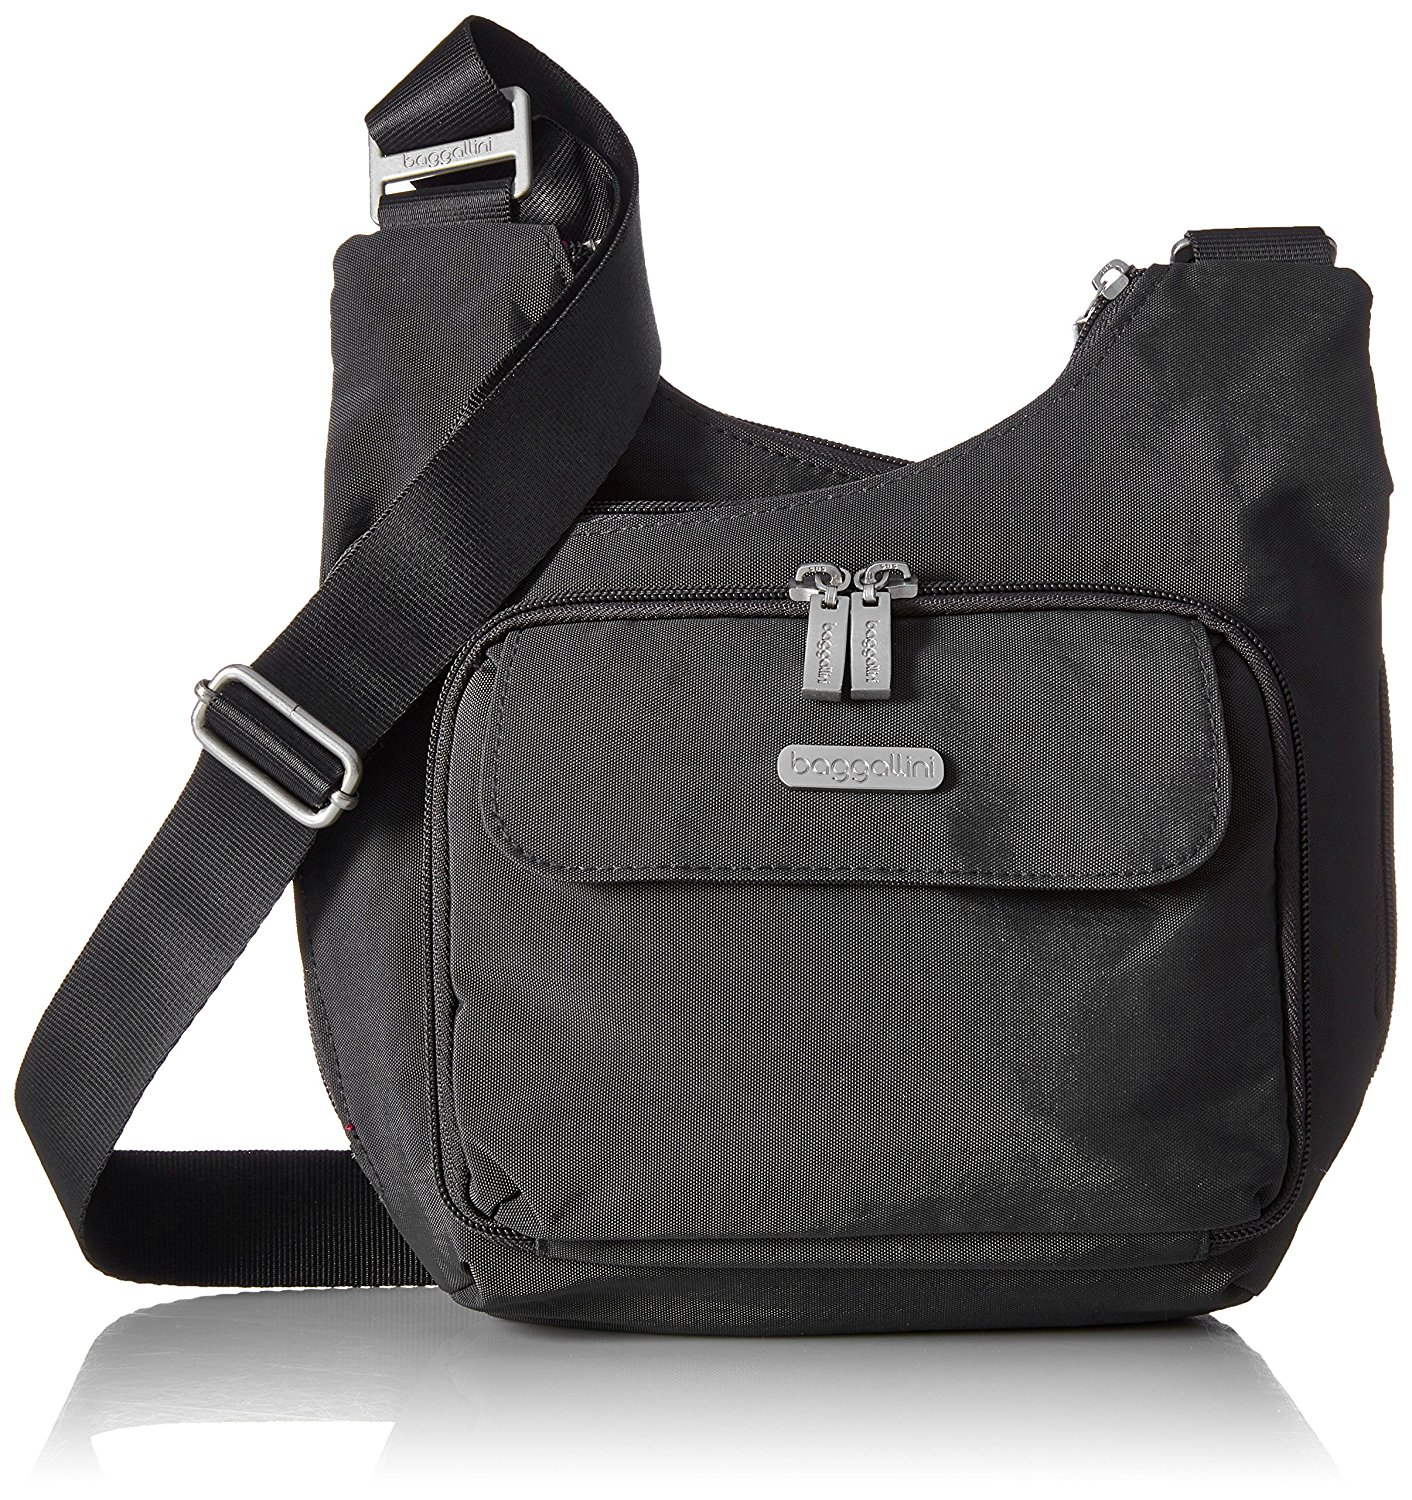 Baggallini Luggage Criss Cross Bag - Charcoal - MCC570CLFS